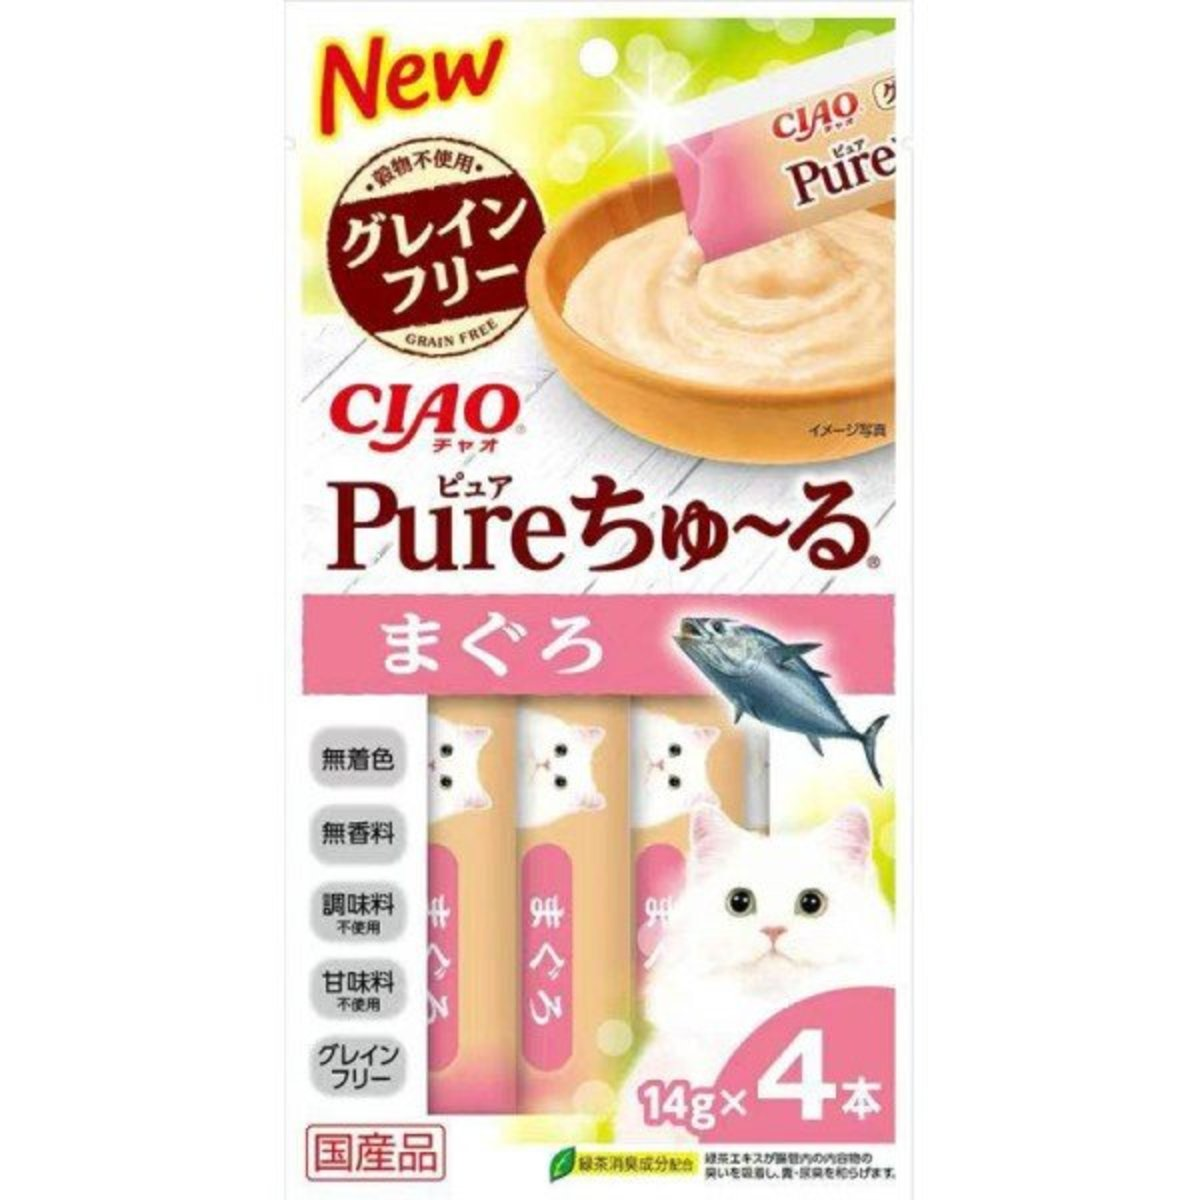 CIAO PURE Tuna Puree (14g x 4) #SC-321